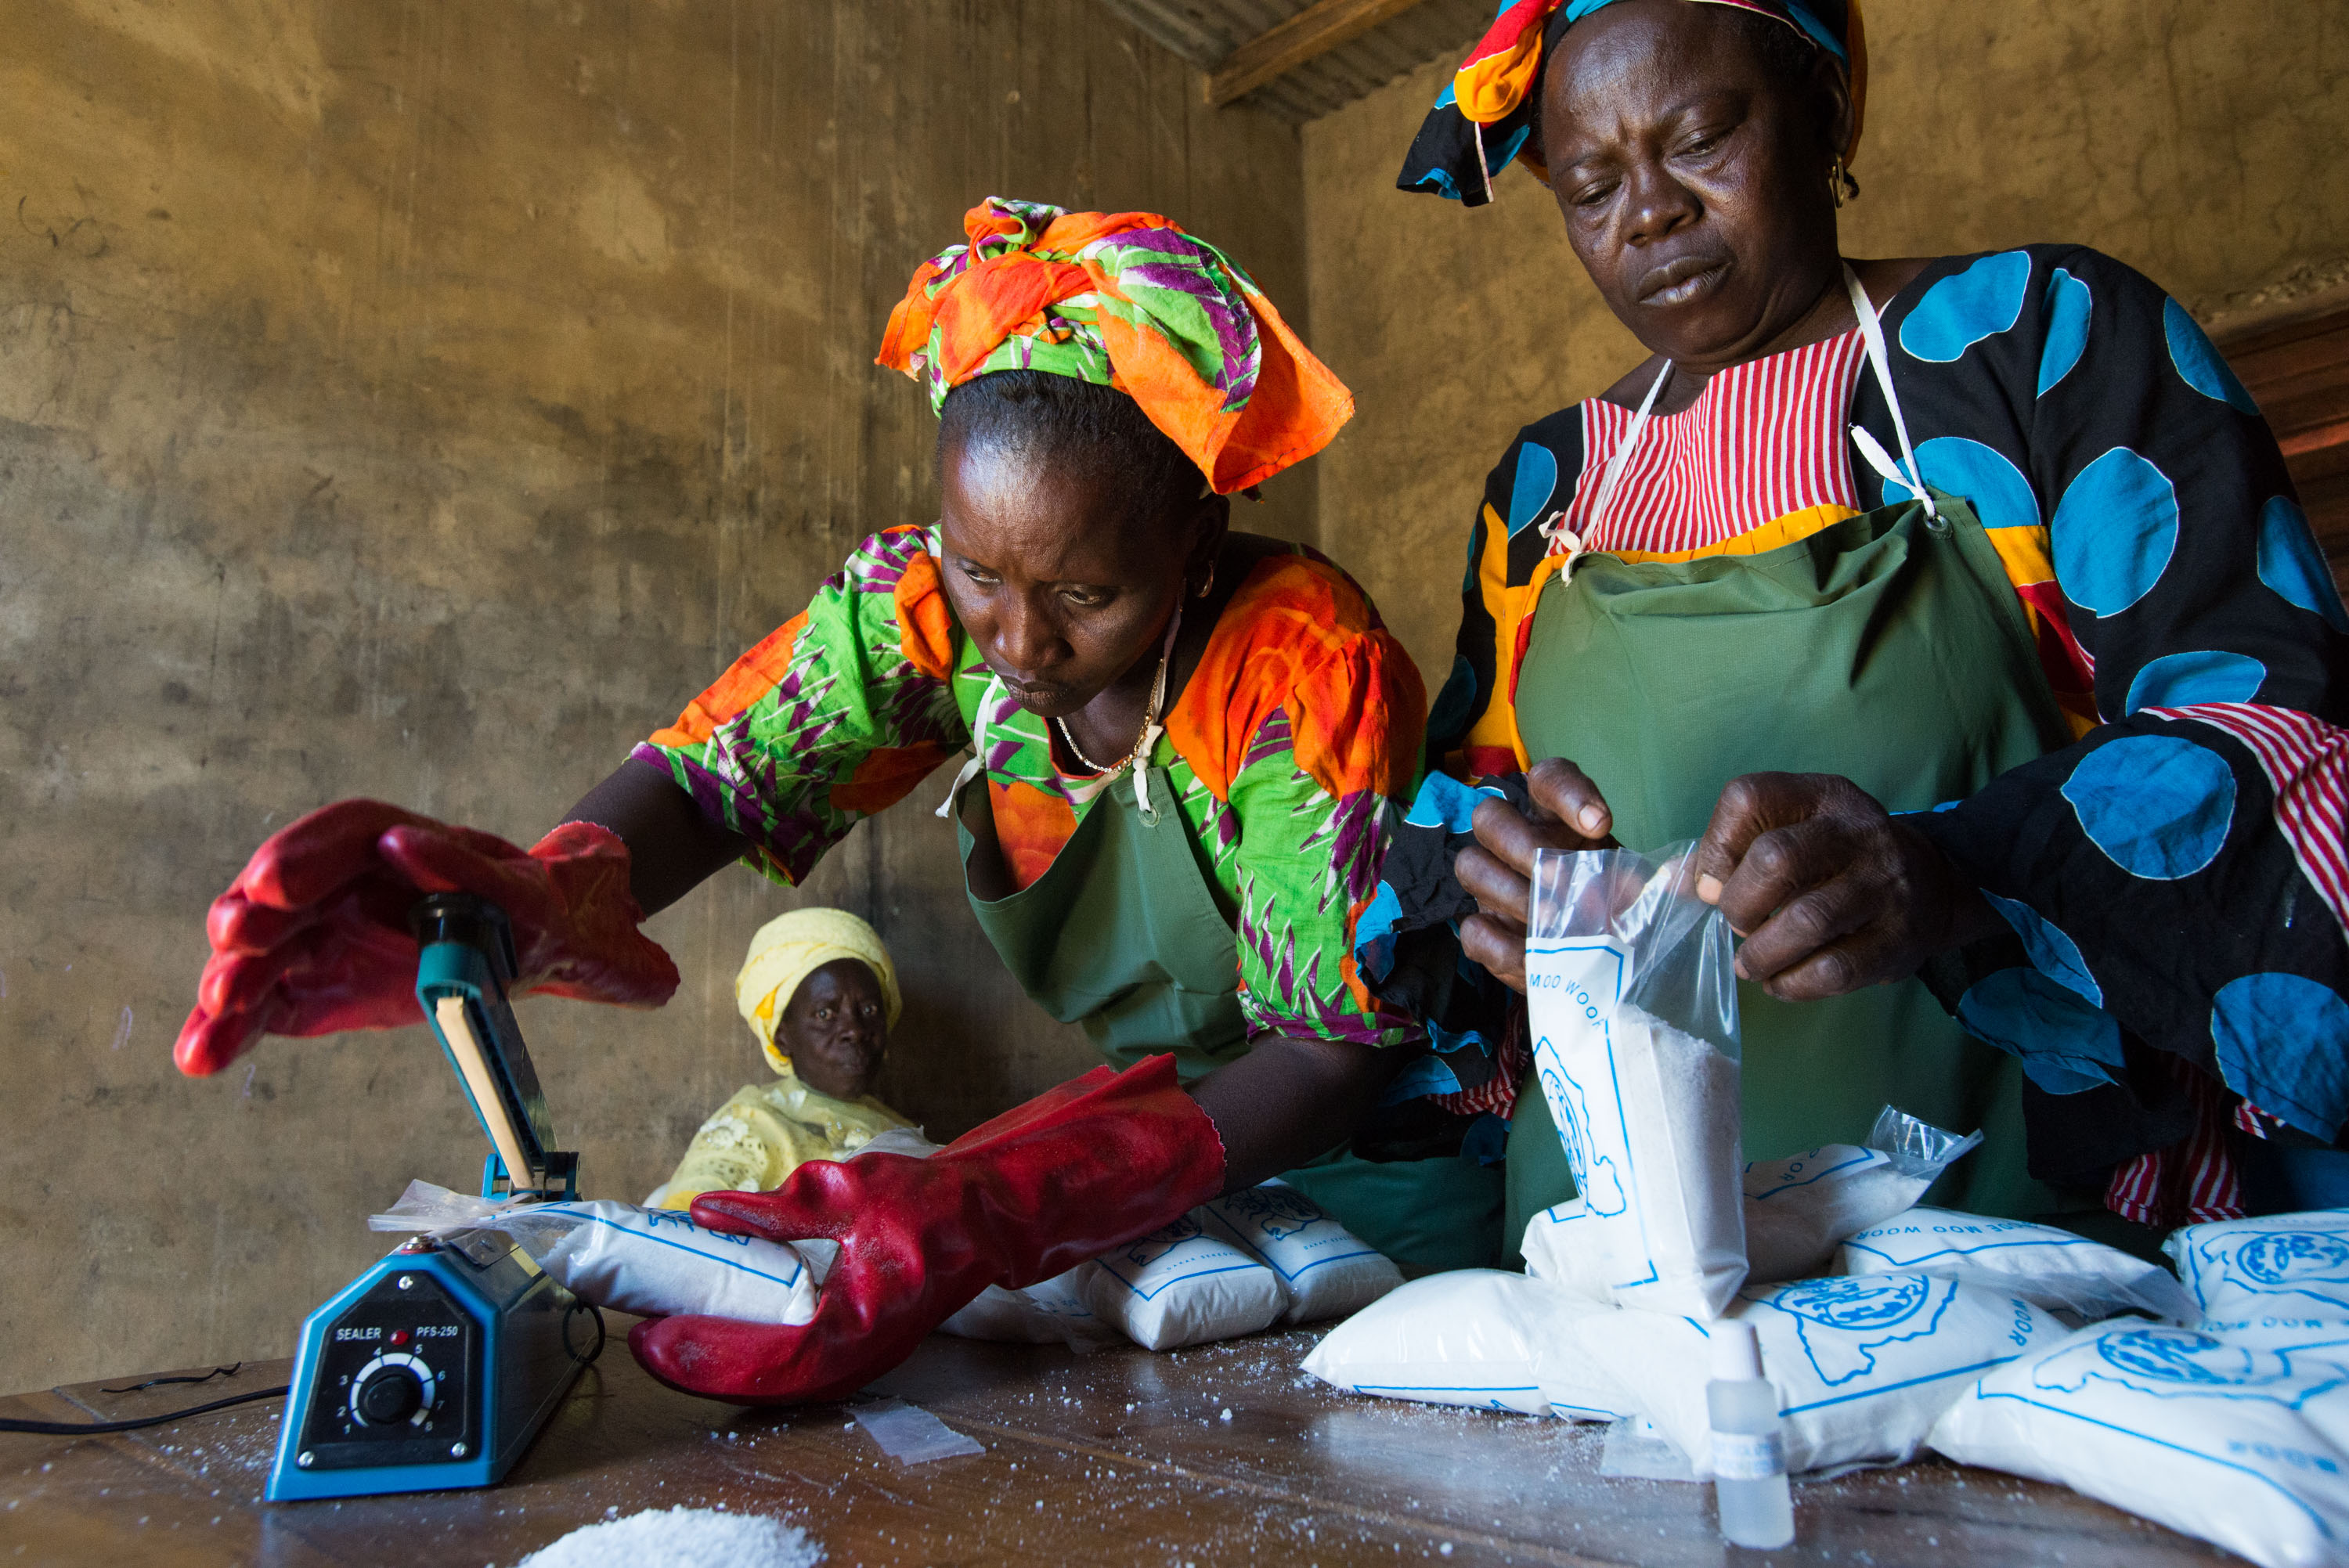 Ndeye Faye, top left, and Seynabou Diouf, right, test salt for iodine content before sealing it in plastic bags, while Fatou Sarr, bottom left, looks on. Marie Diouf employs the women in her micro-business producing and packaging iodized salt.